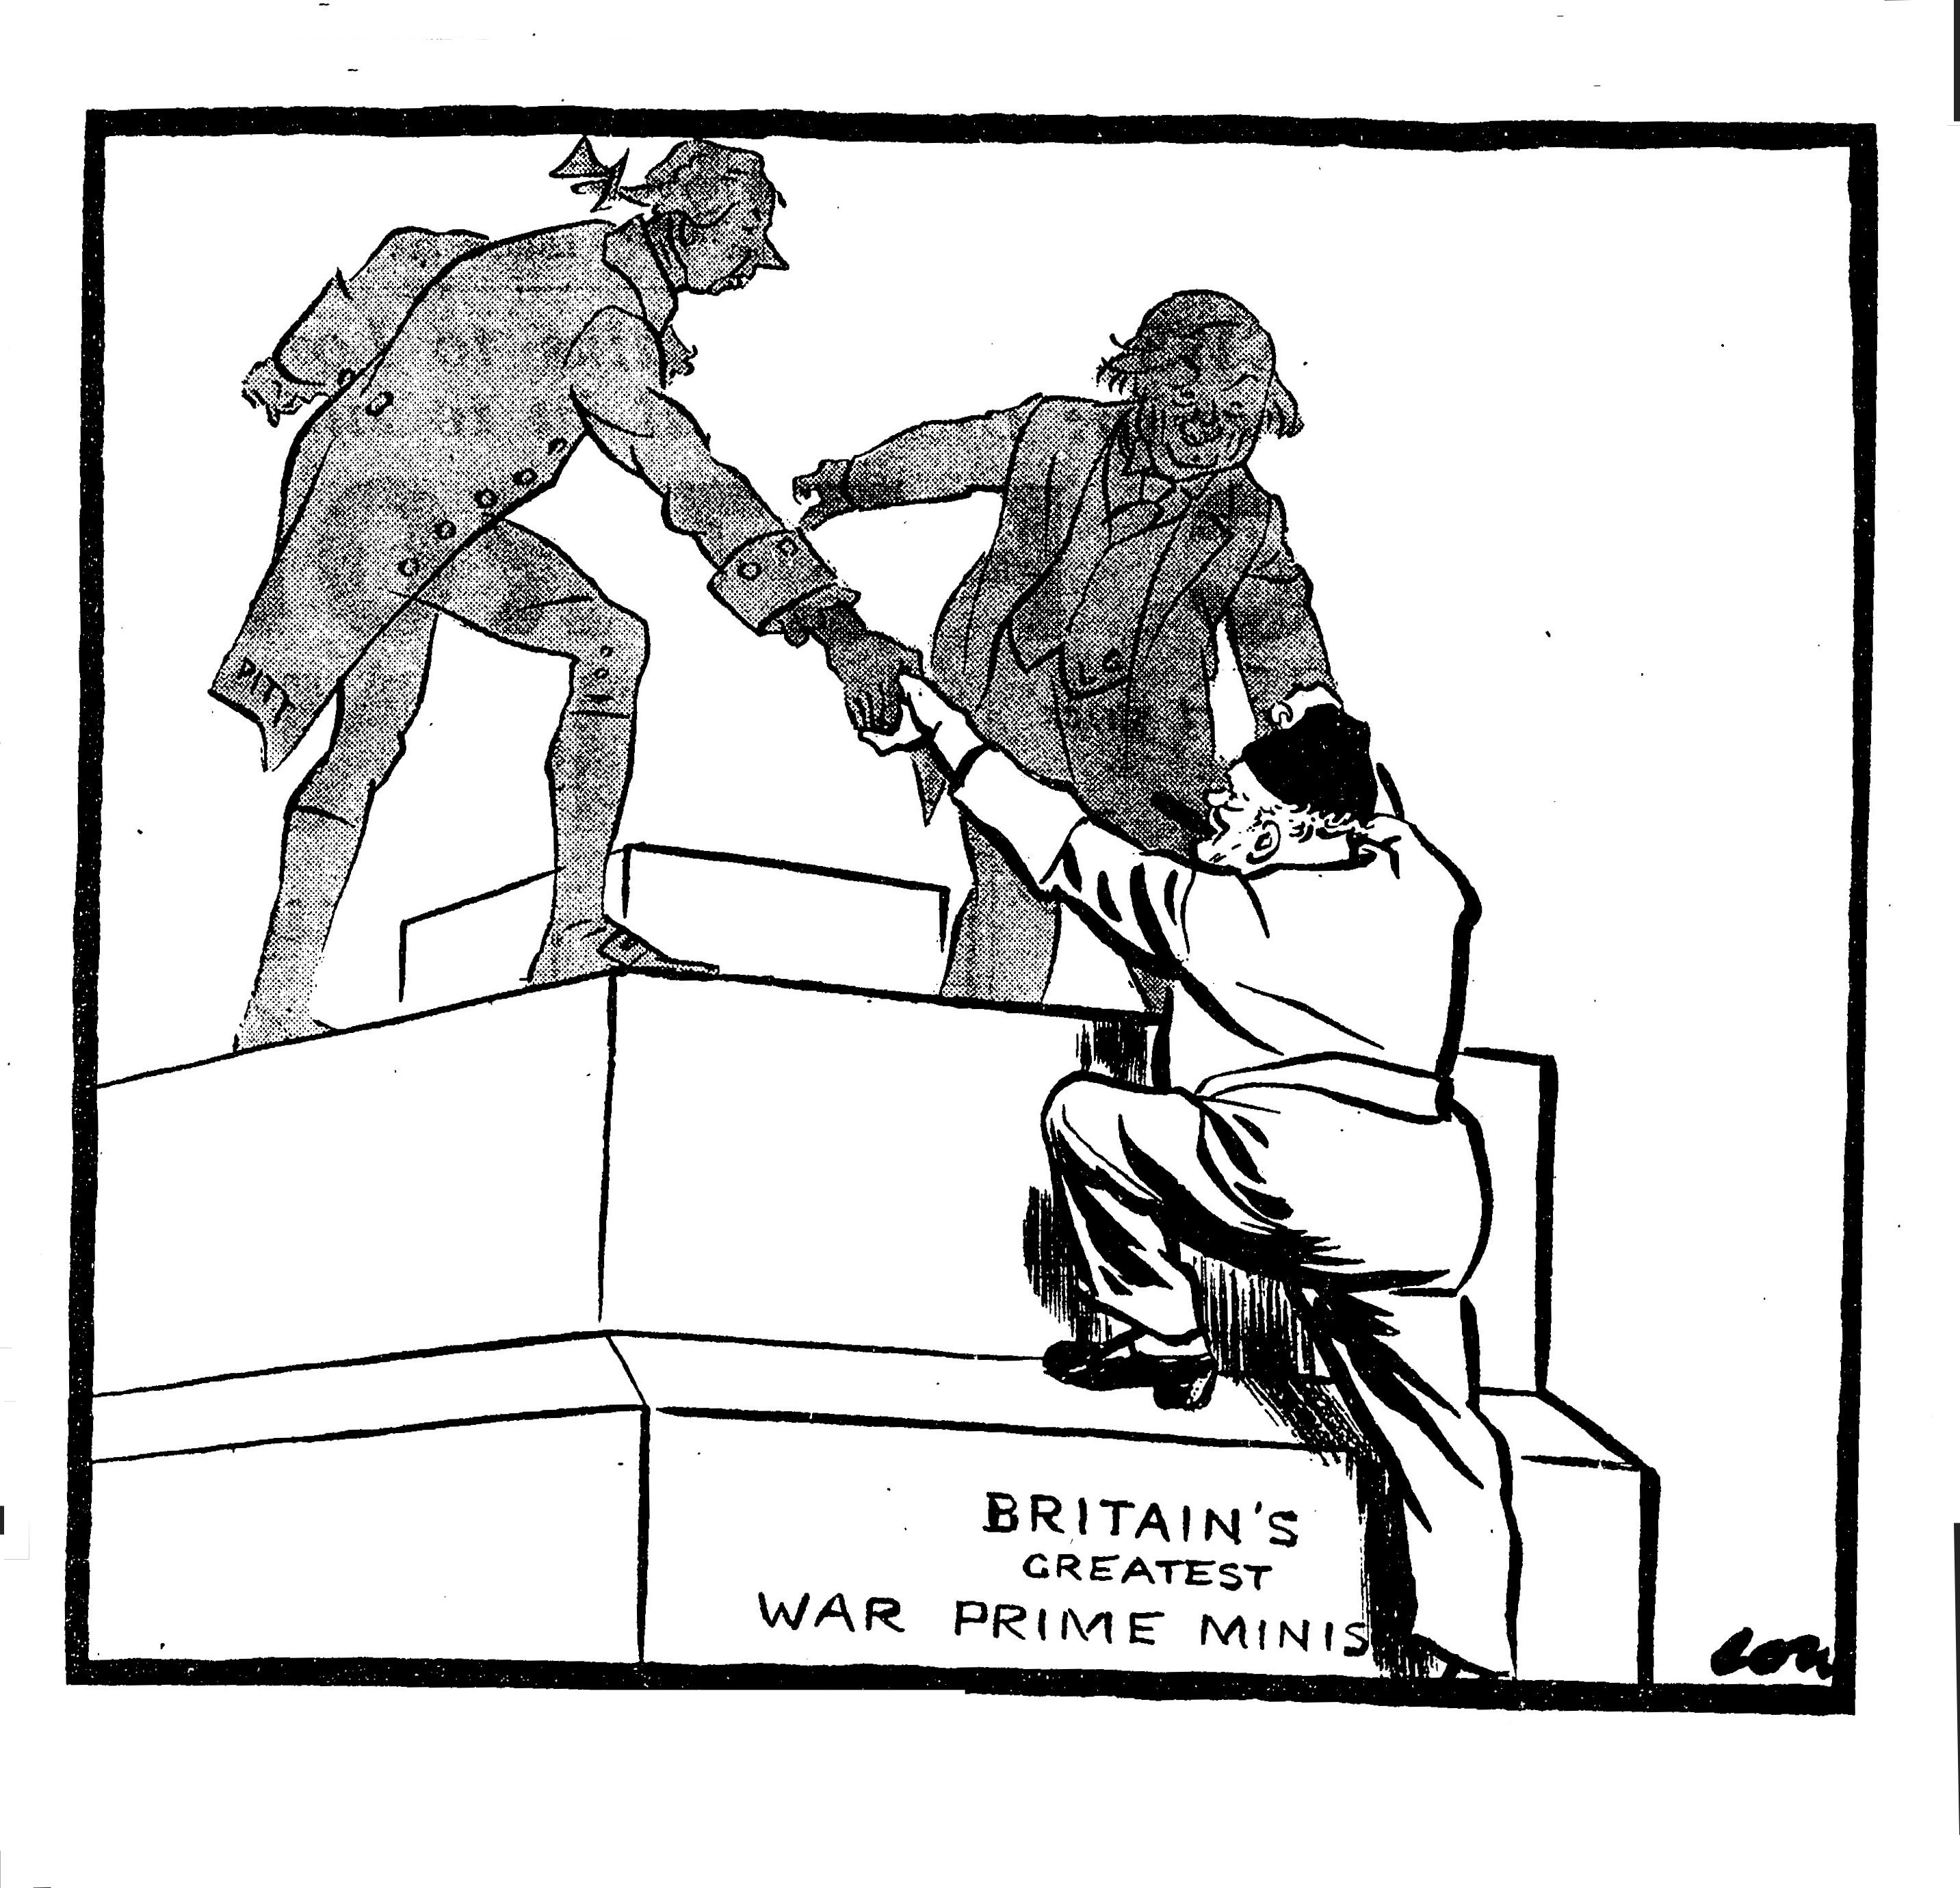 David Low, [no caption], Evening Standard, 12th May 1945 (LSE1229A)